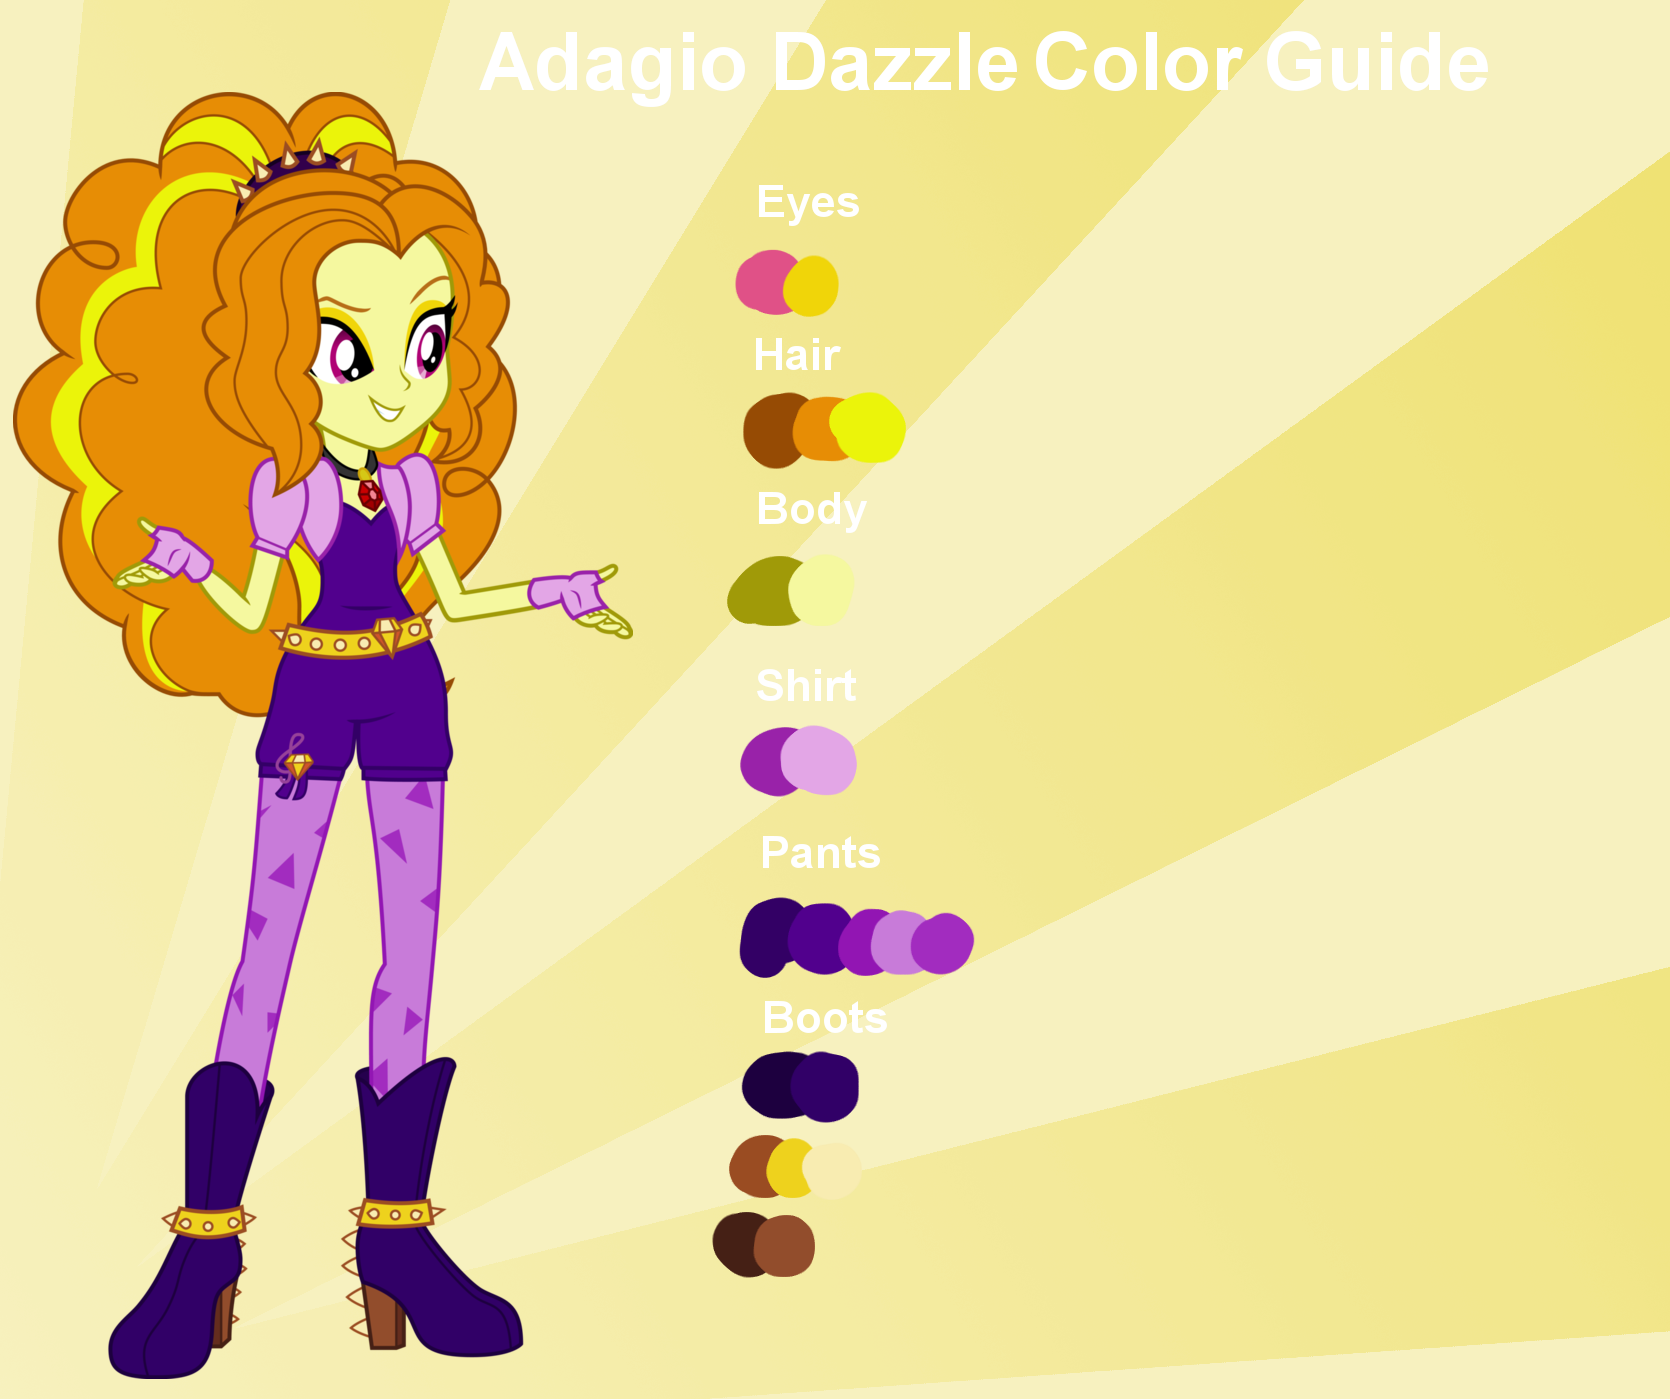 Adagio Dazzle Color Guide By Nightfang123 Adagio Dazzle Color Guide By  Nightfang123